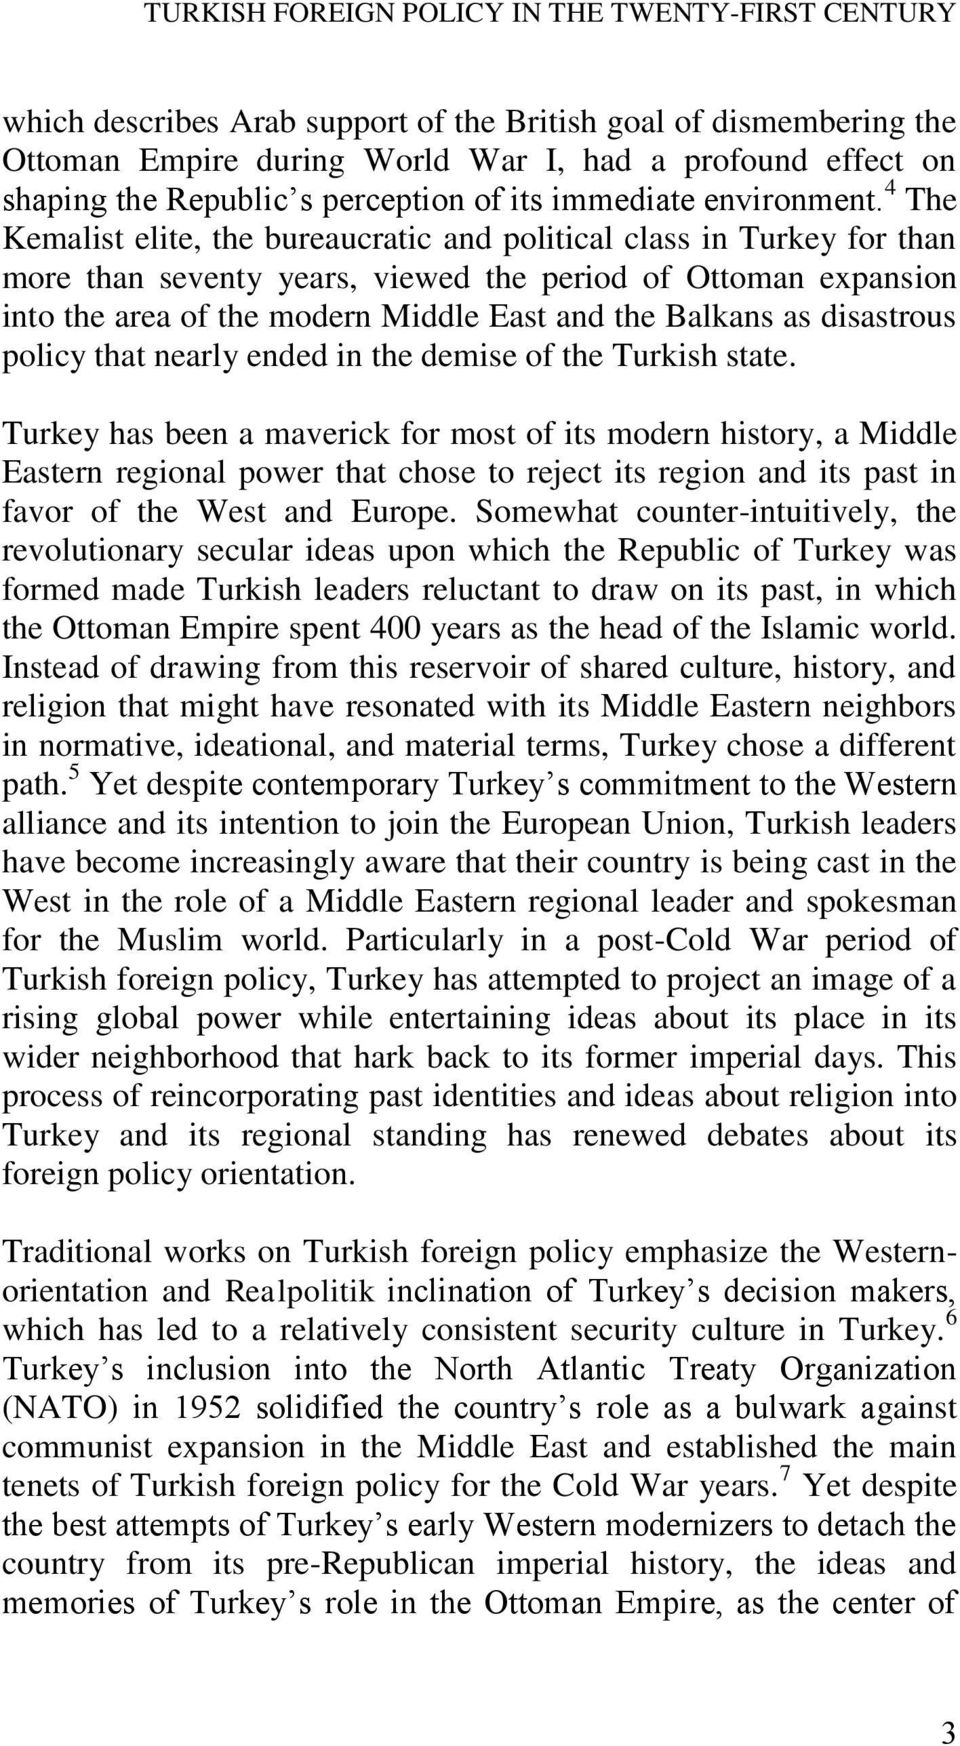 4 The Kemalist elite, the bureaucratic and political class in Turkey for than more than seventy years, viewed the period of Ottoman expansion into the area of the modern Middle East and the Balkans